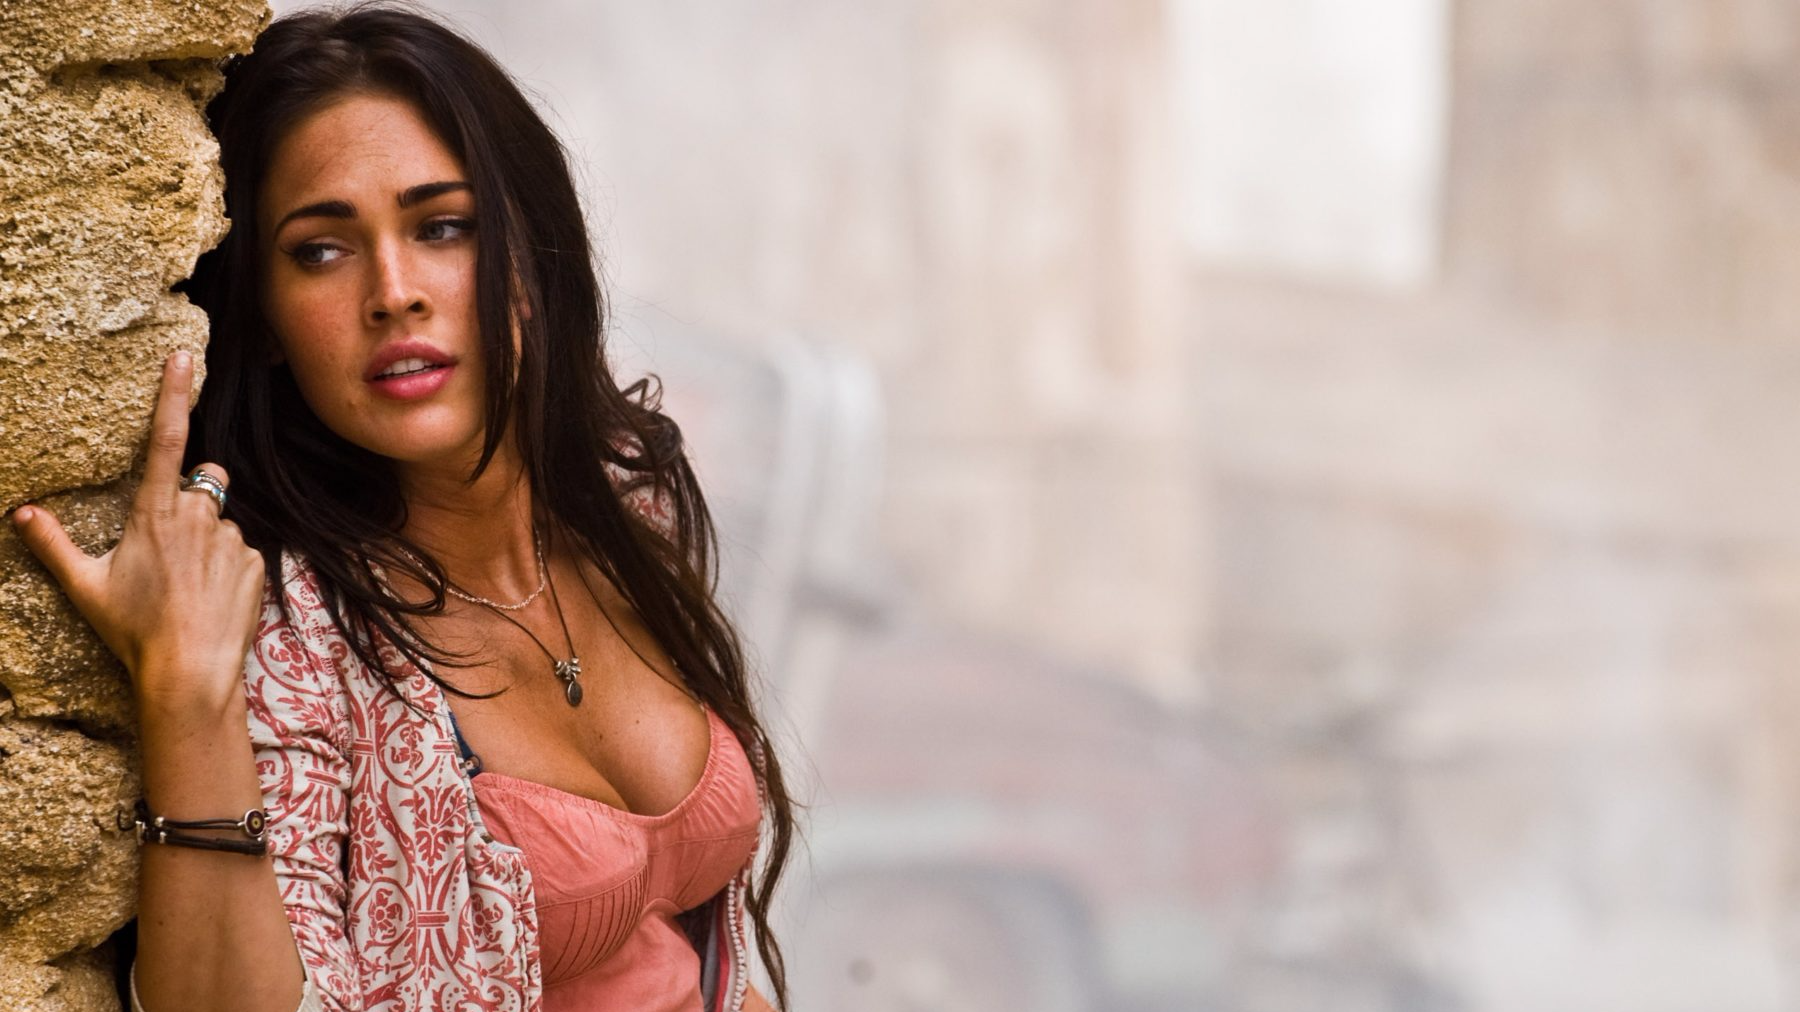 You Don't See Much More Of Megan Fox Anymore Because Of A Few Wrong Words